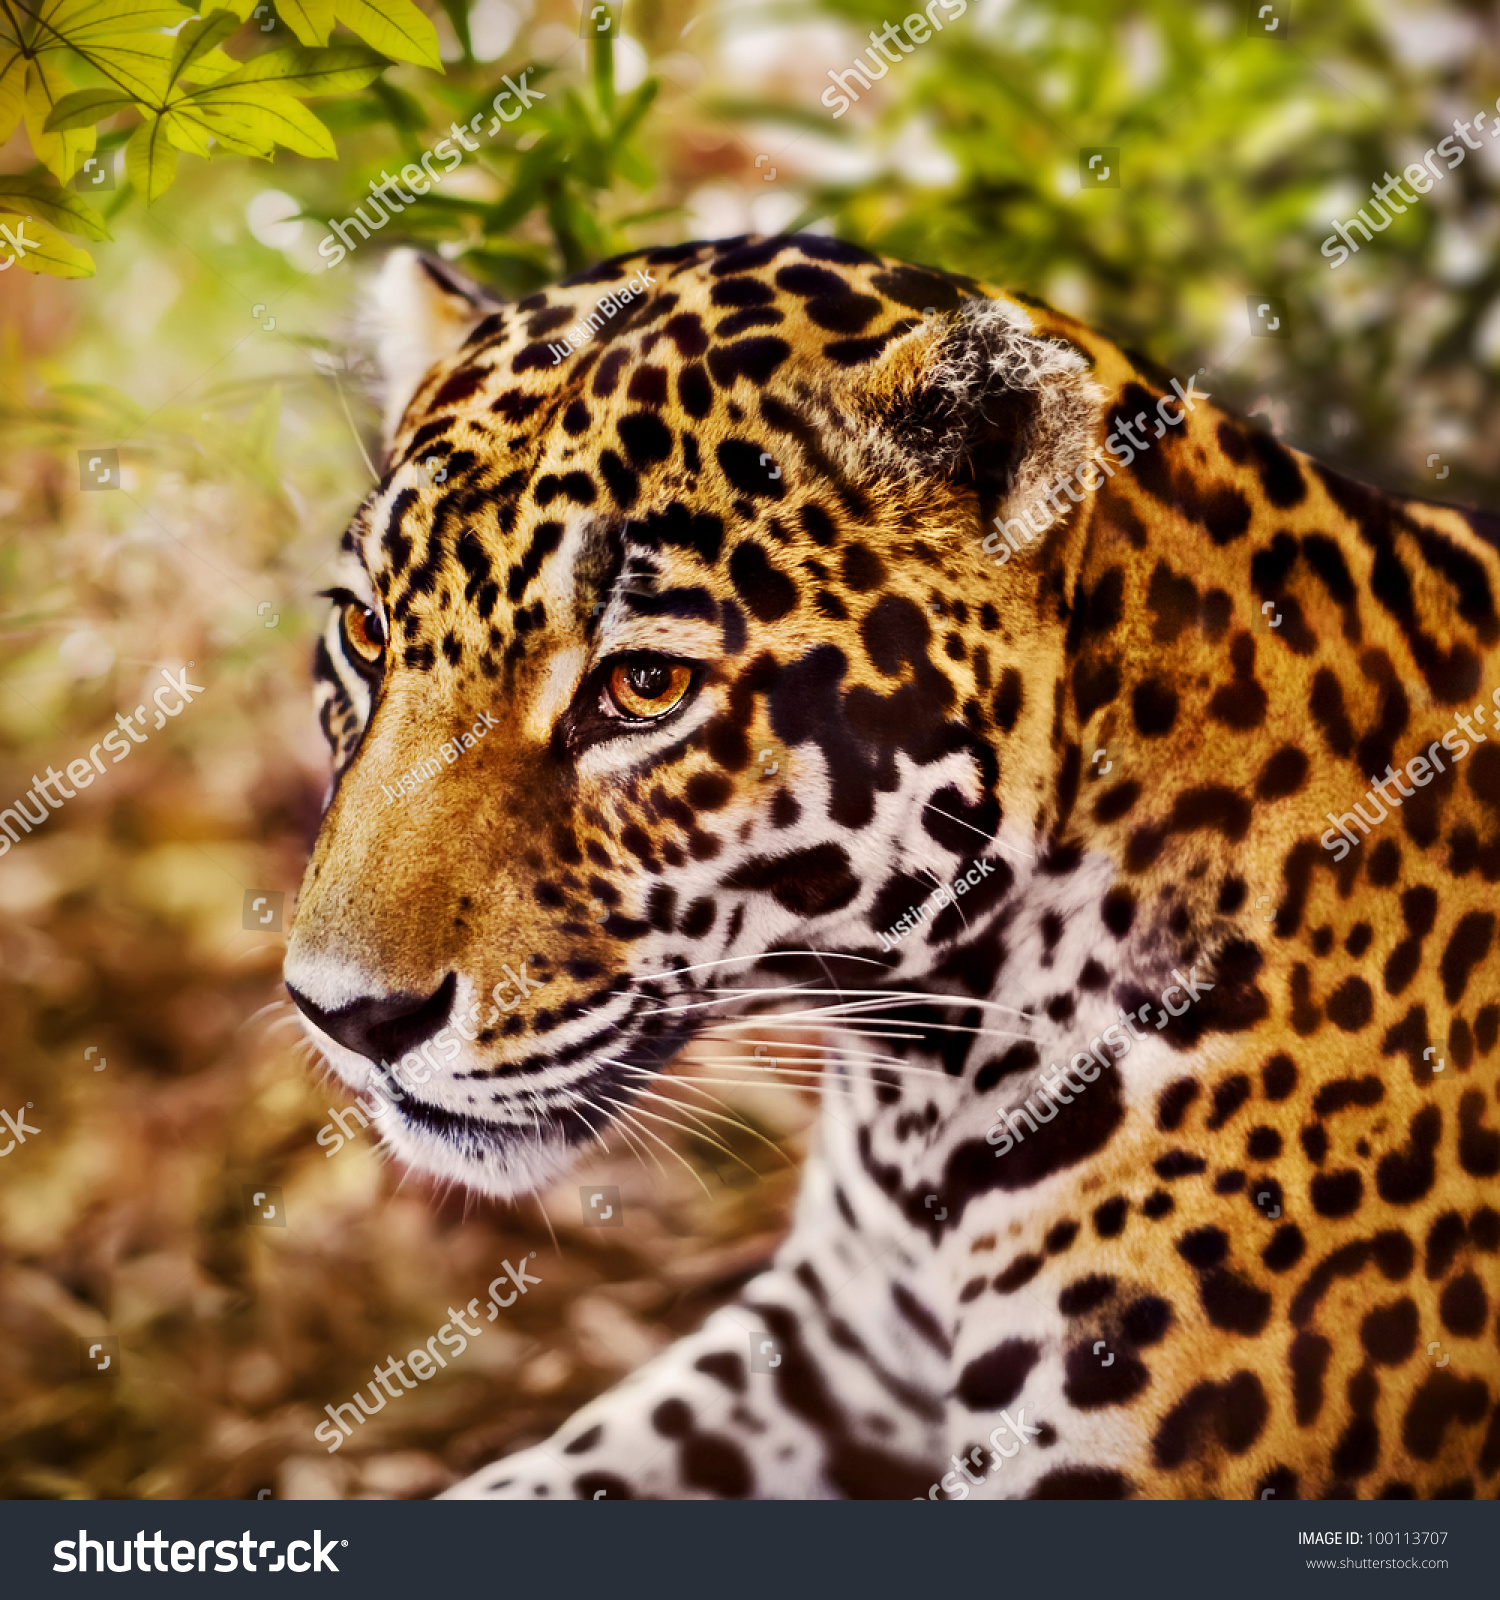 Panthera Onca Stock Images: Jaguar, (Panthera Onca) Stock Photo 100113707 : Shutterstock